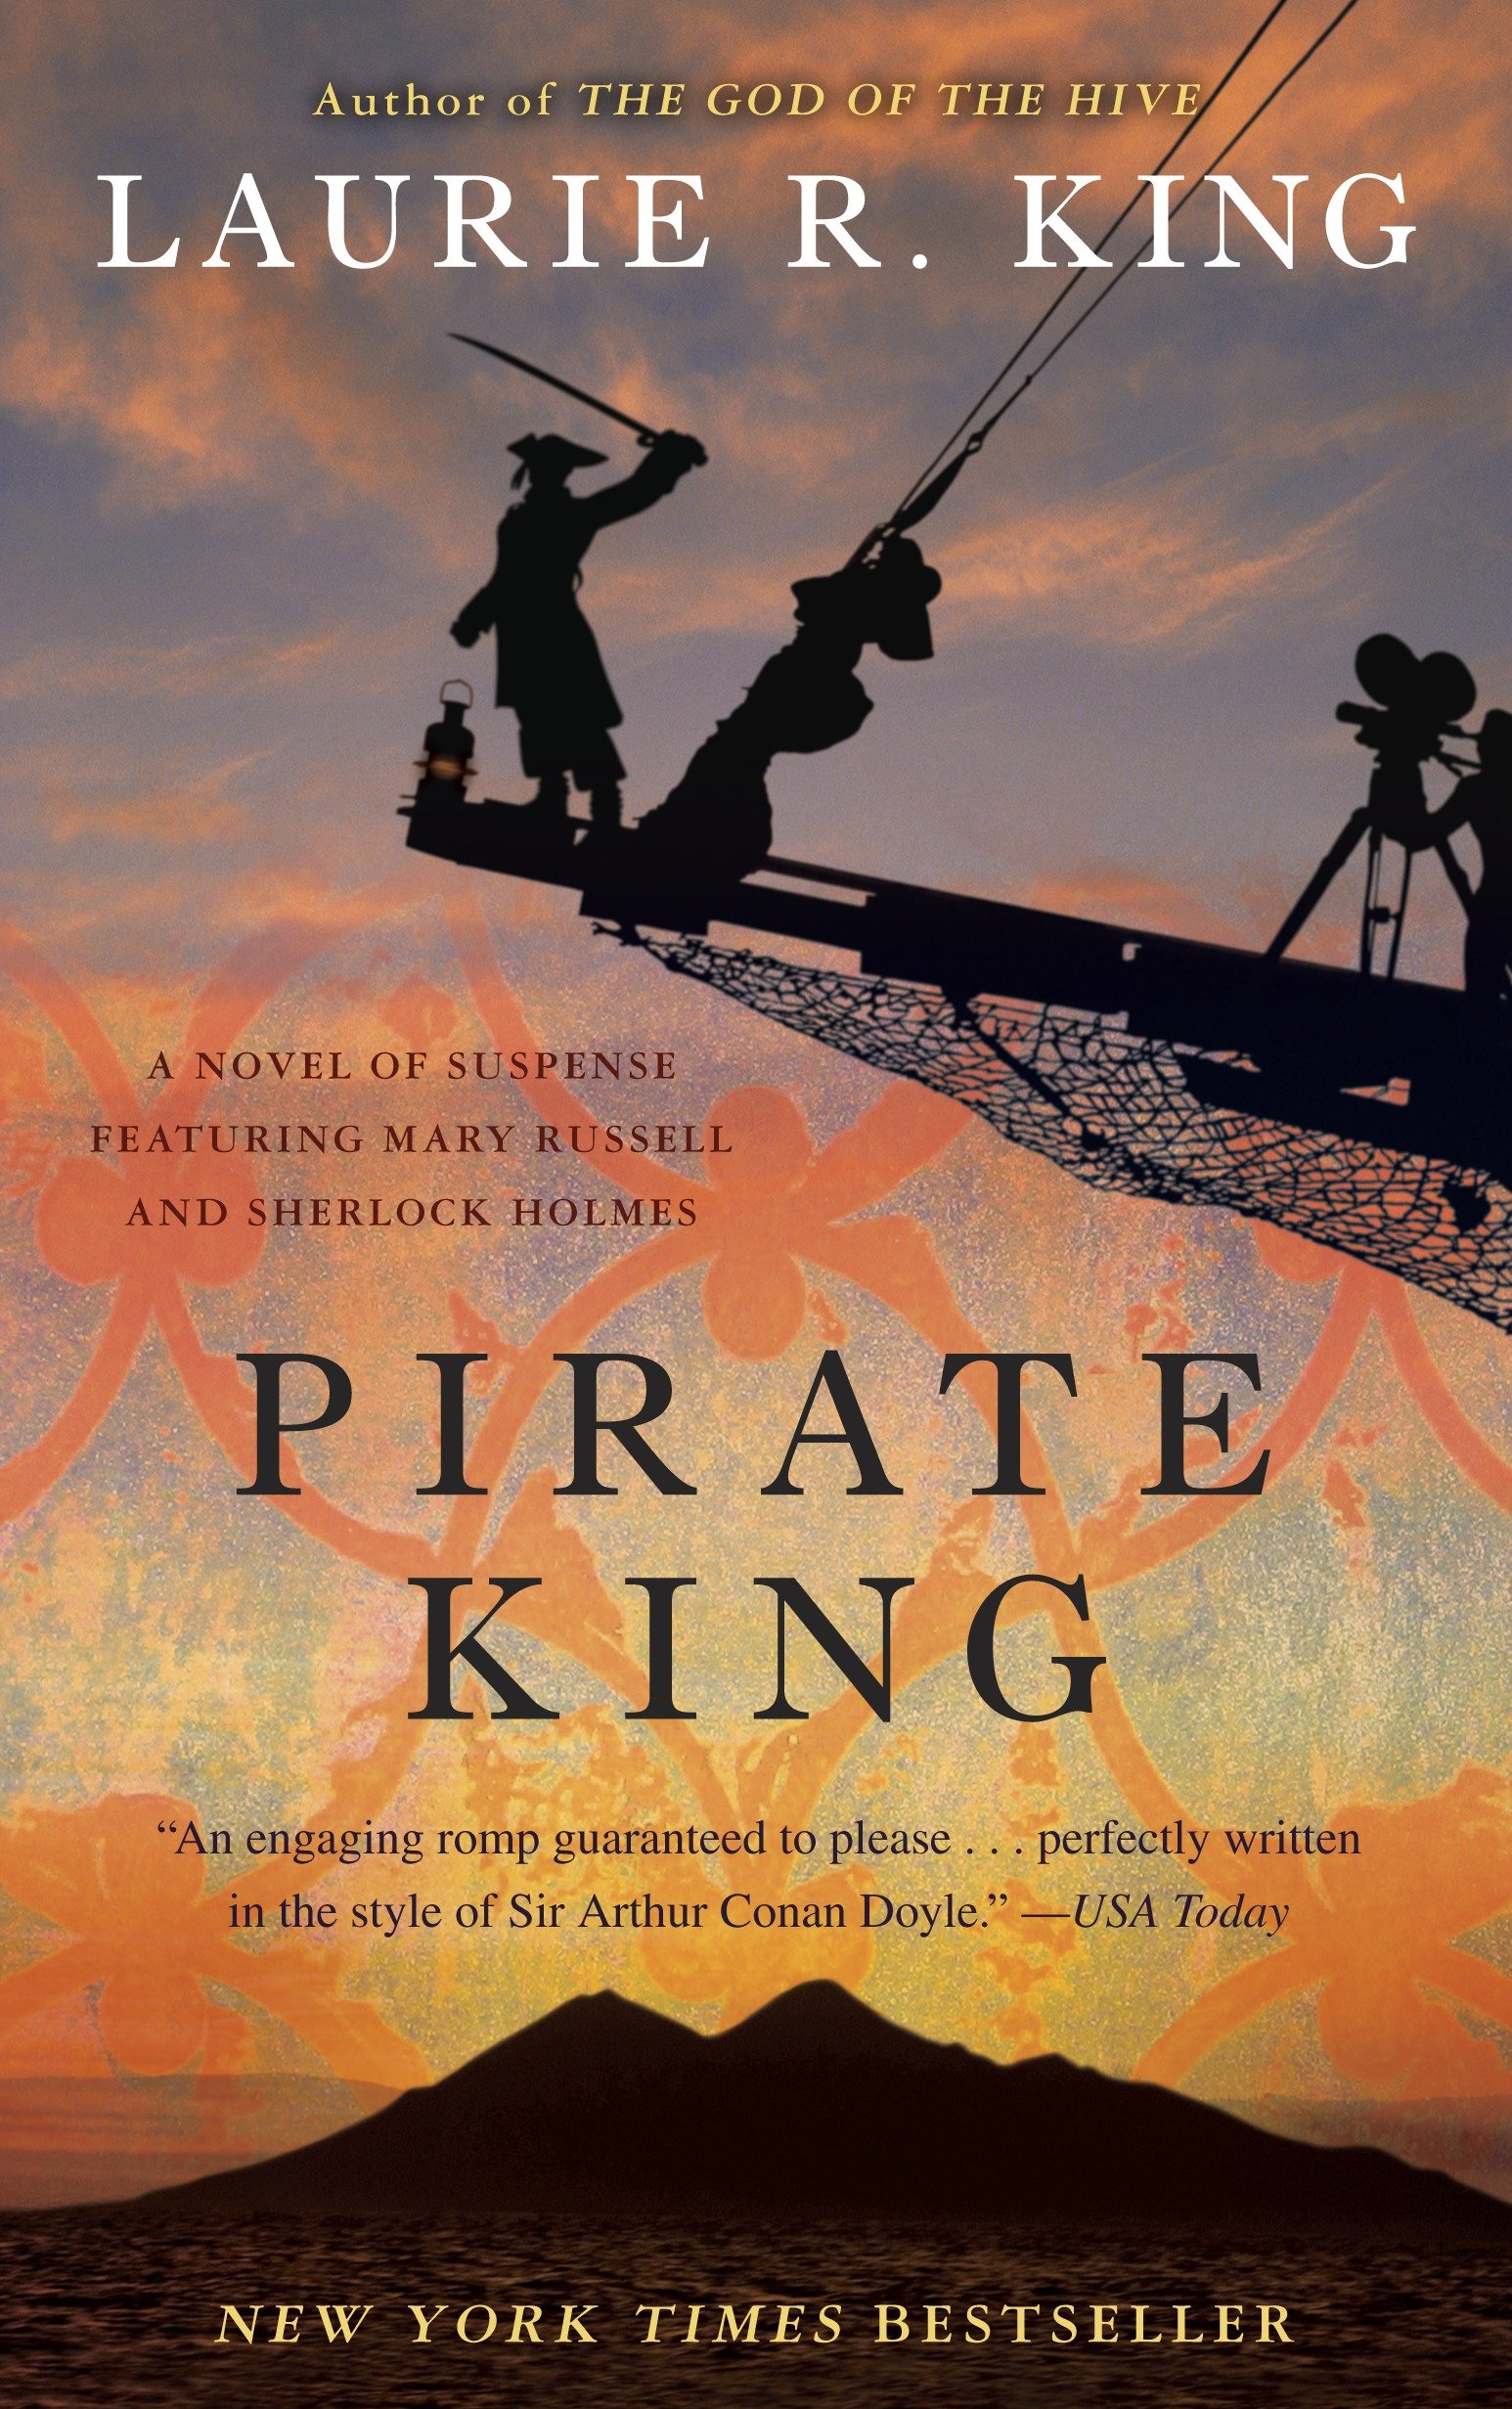 Pirate king a novel of suspense featuring Mary Russell and Sherlock Holmes cover image